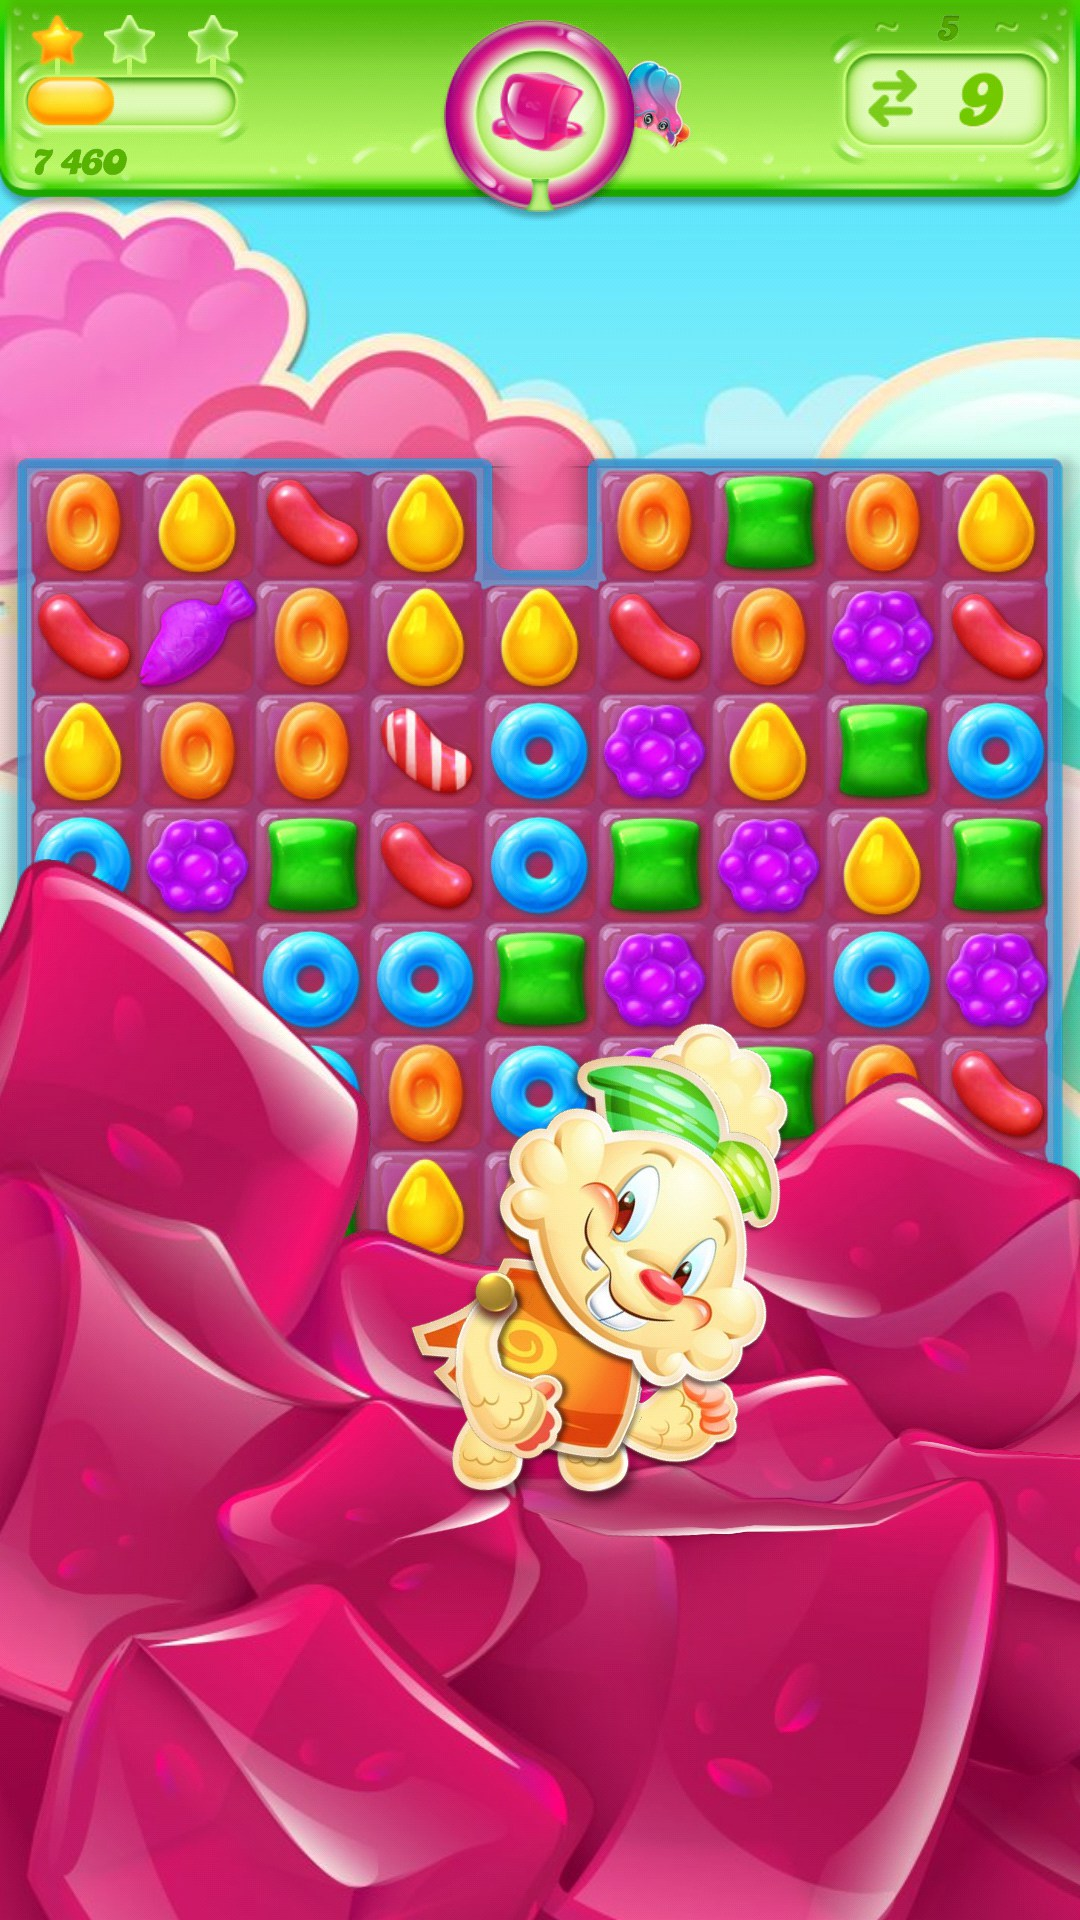 Candy Crush Jelly Saga Juegos Para Android 2018 Descarga Gratis